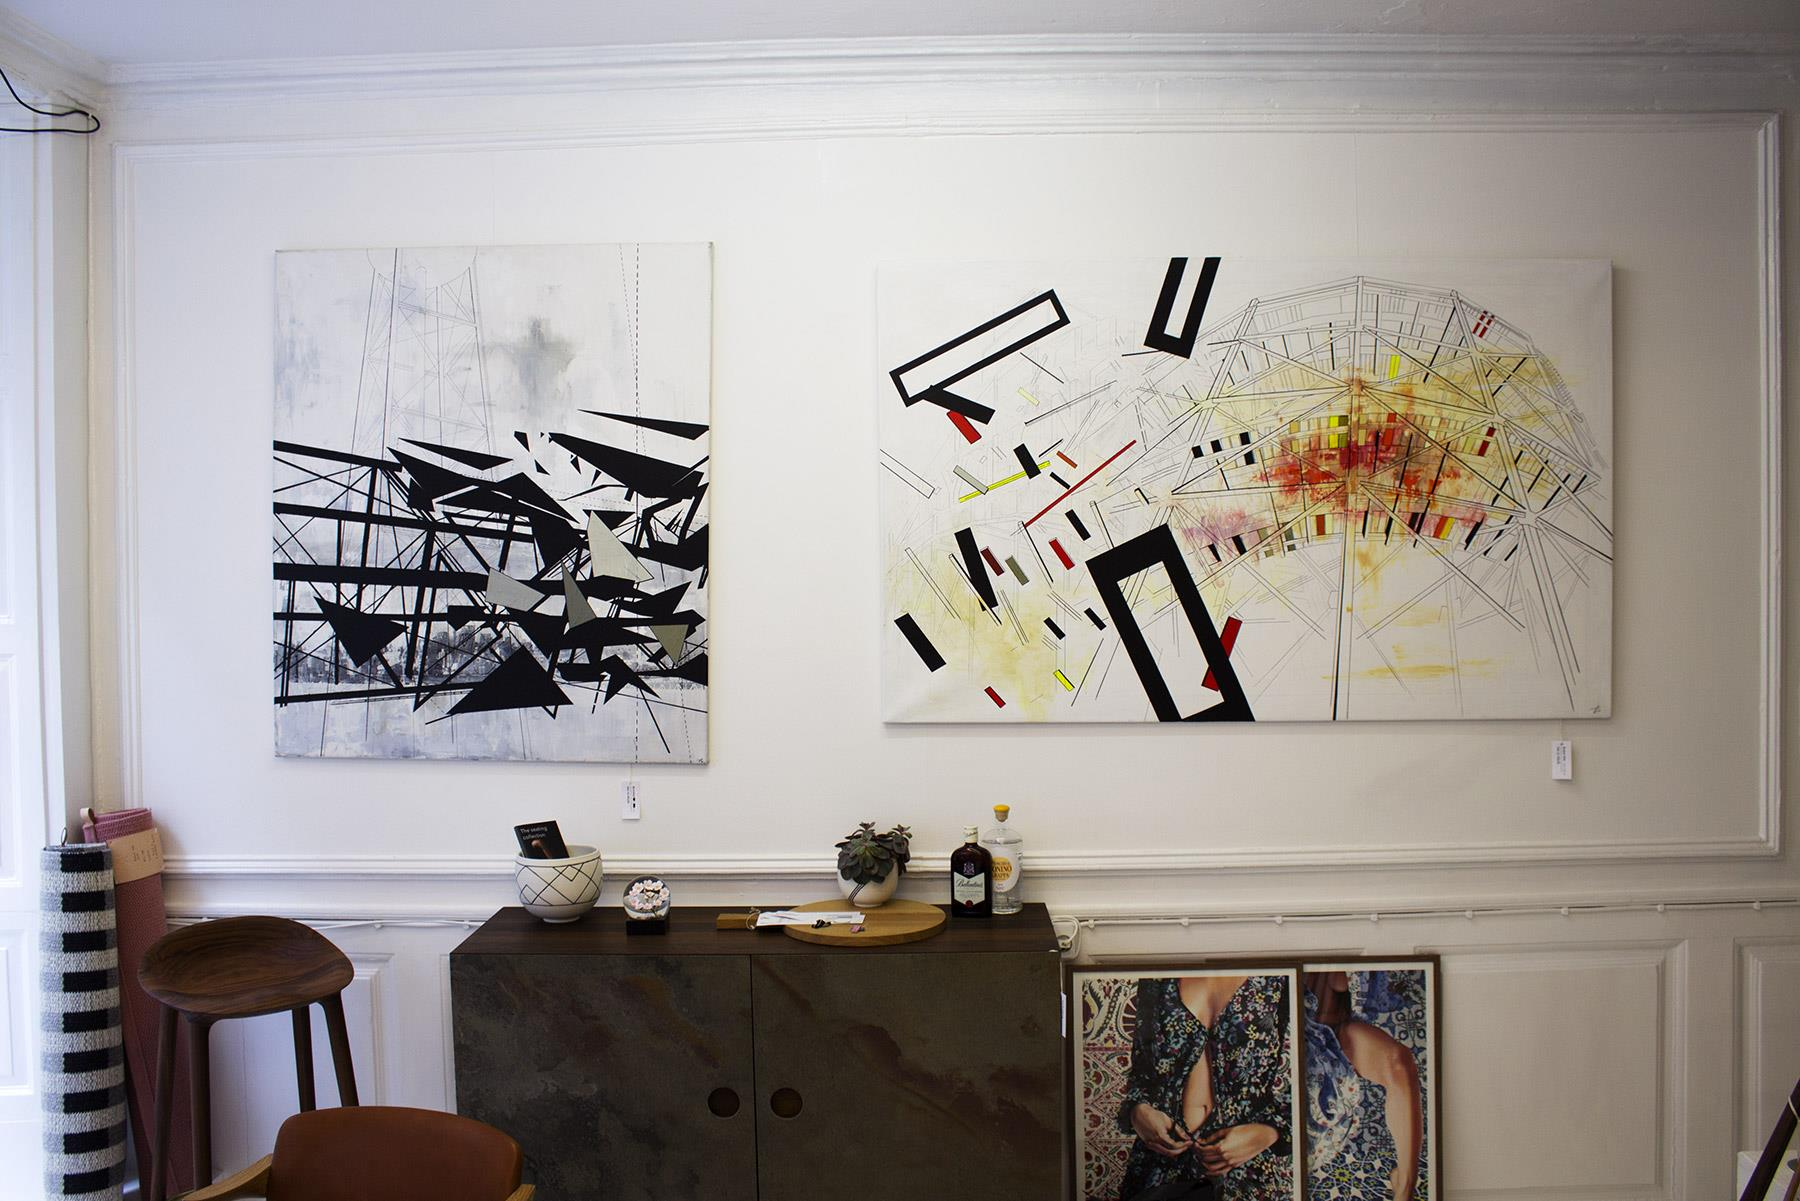 paintings, collages, abstract, geometric, graphical, architecture, beige, black, grey, white, acrylic, marker, abstract-forms, architectural, buildings, design, interior, interior-design, Buy original high quality art. Paintings, drawings, limited edition prints & posters by talented artists.